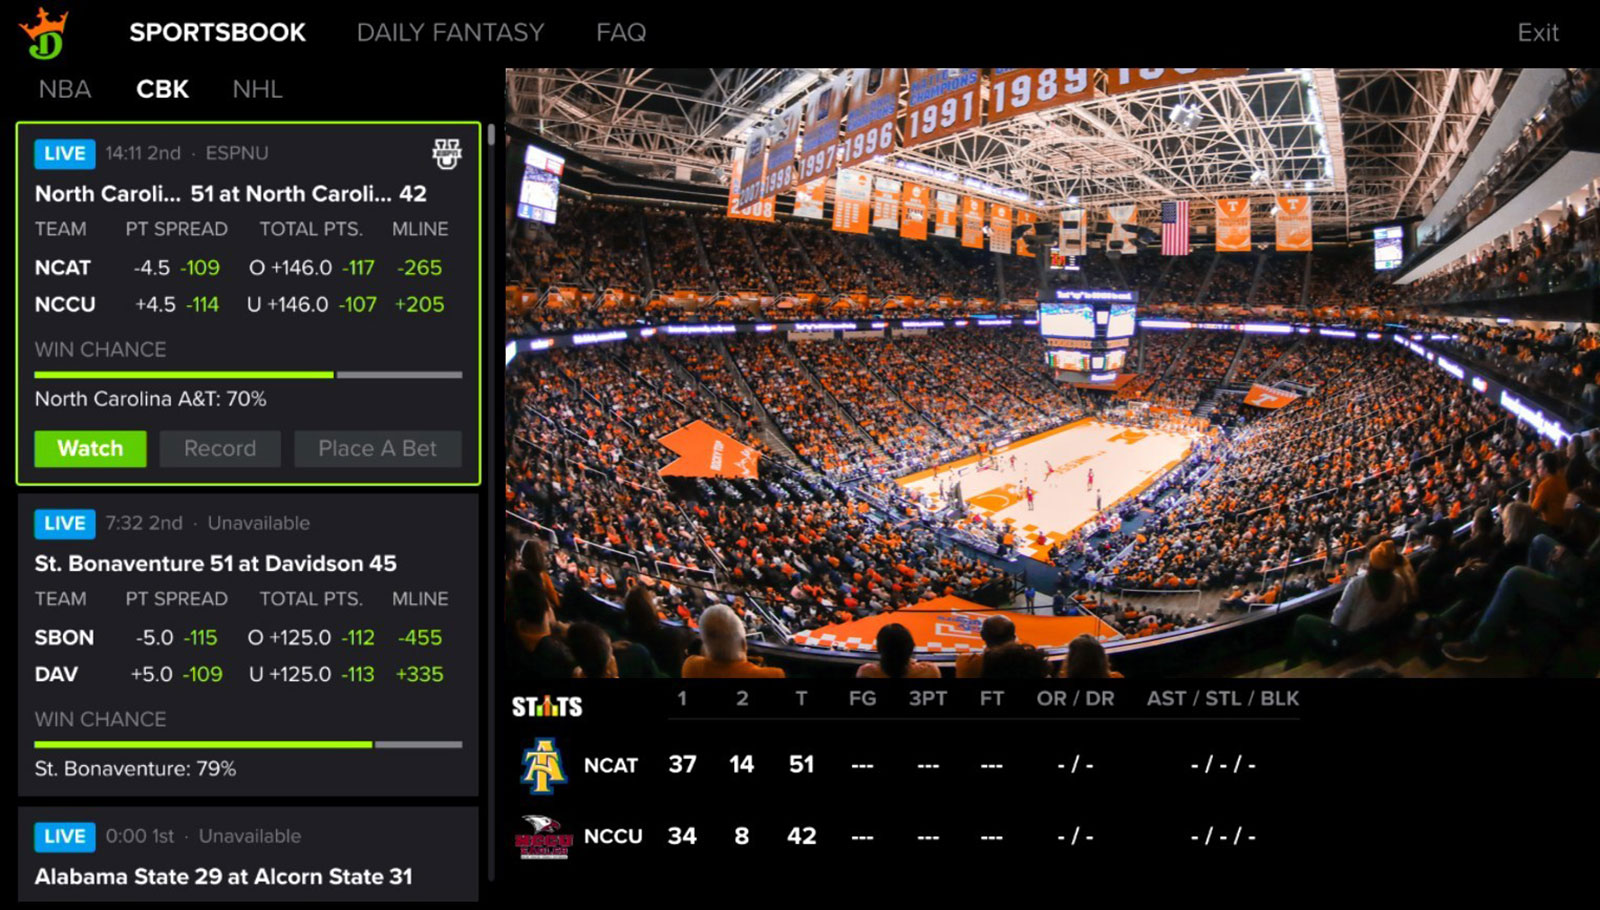 You can make DraftKings sports bets using your Dish DVR